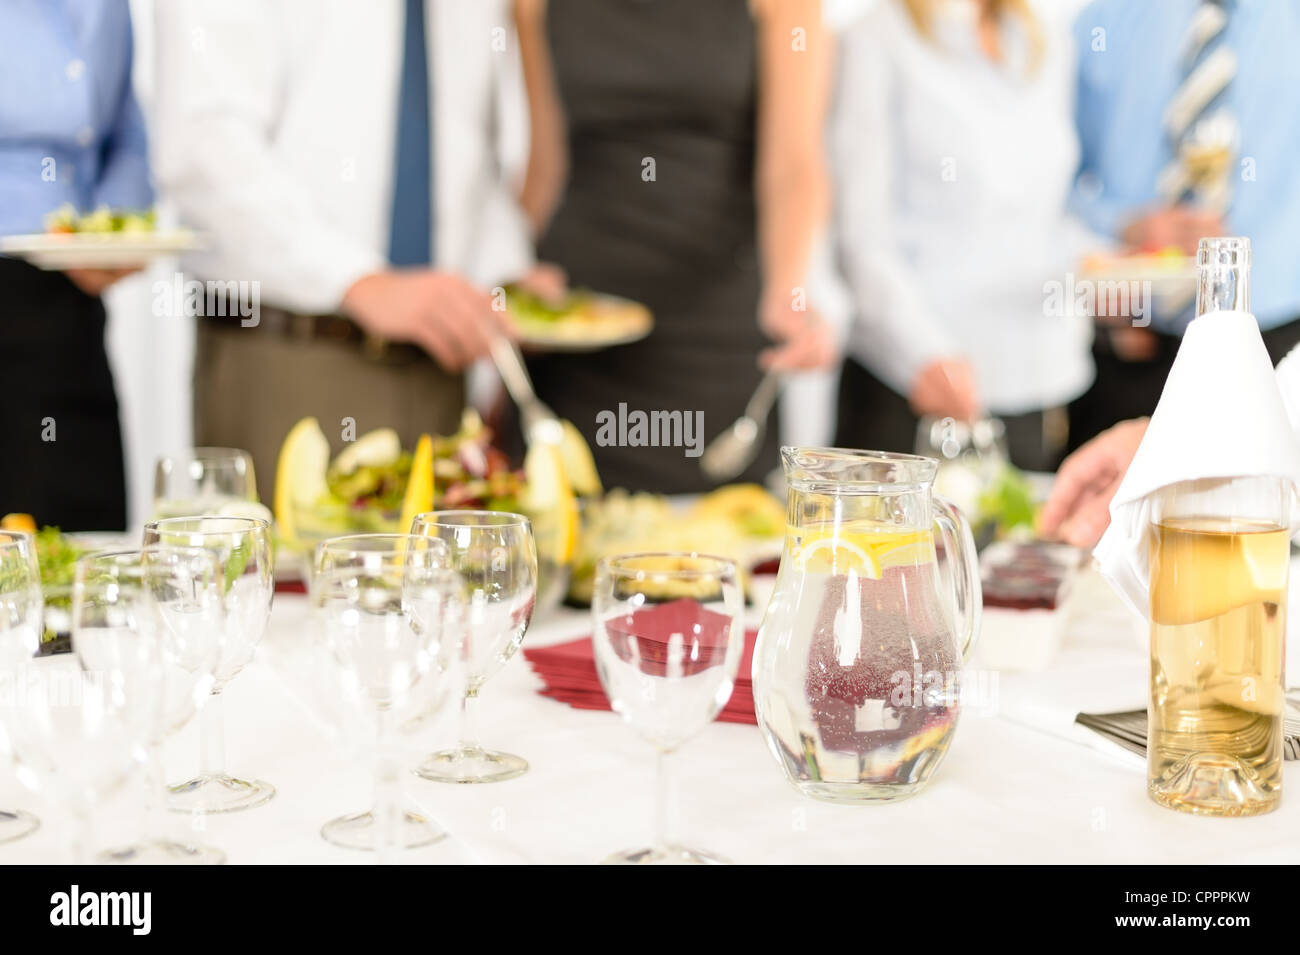 Company celebration close-up of glasses for drink catering in background - Stock Image